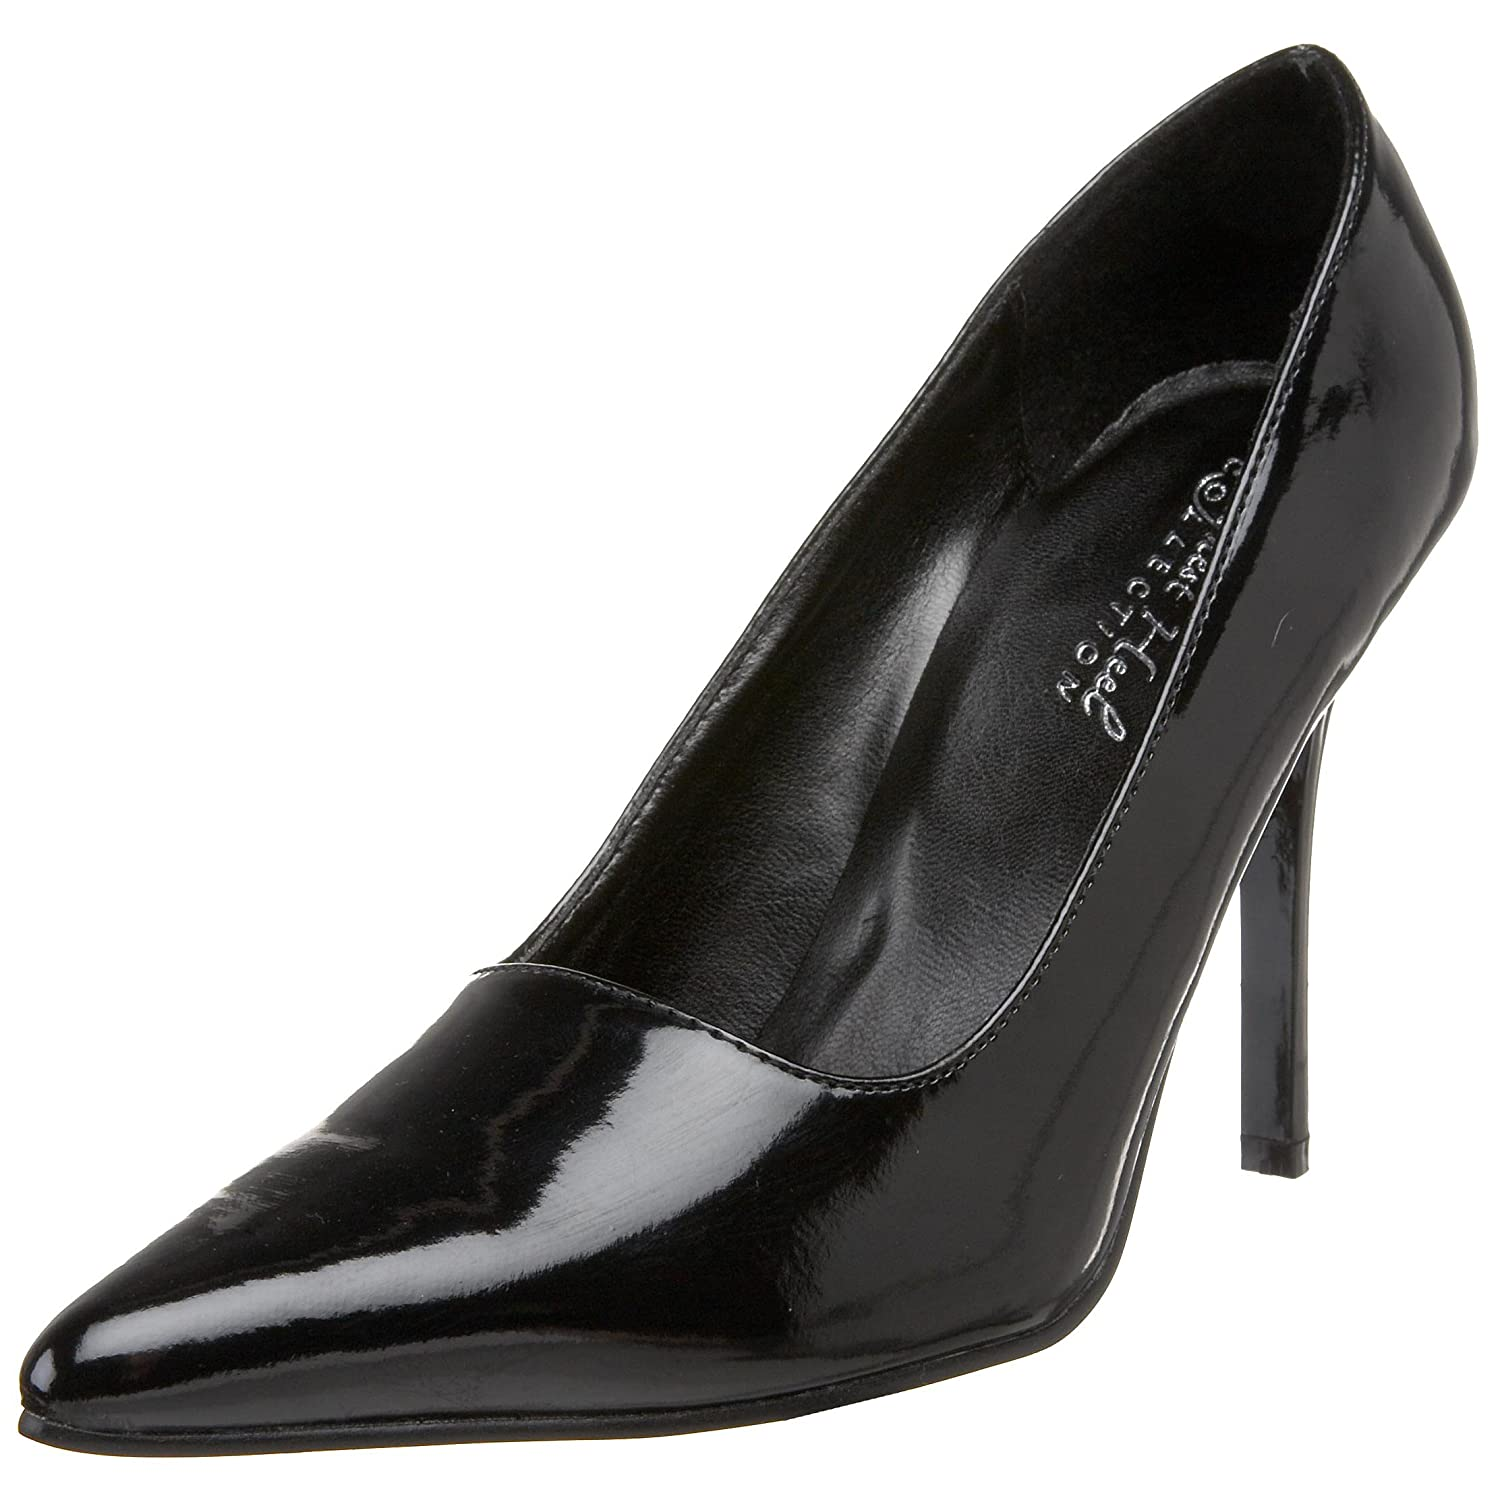 The Highest Heel Women's Classic Pump B000T86KUC 5 B(M) US|Black Patent